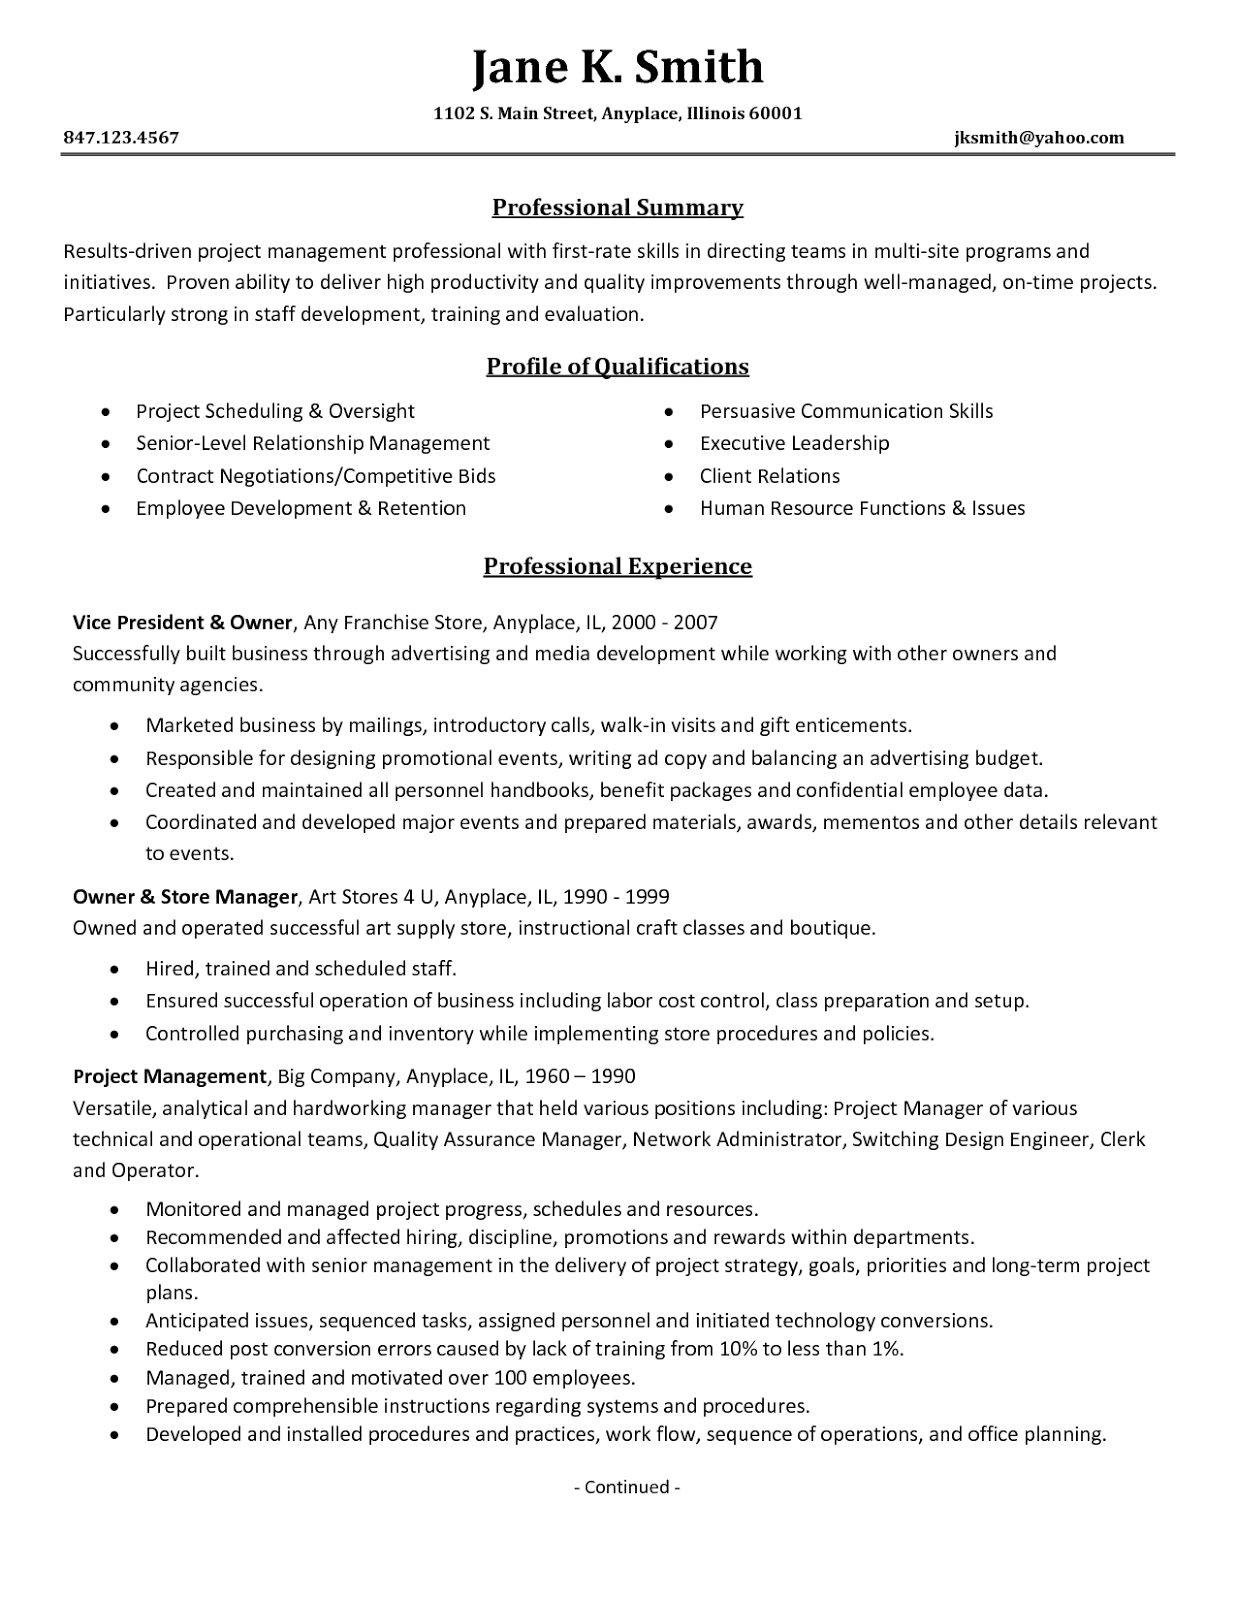 Professional Resume Writing Service Assistance Looked After Your ...